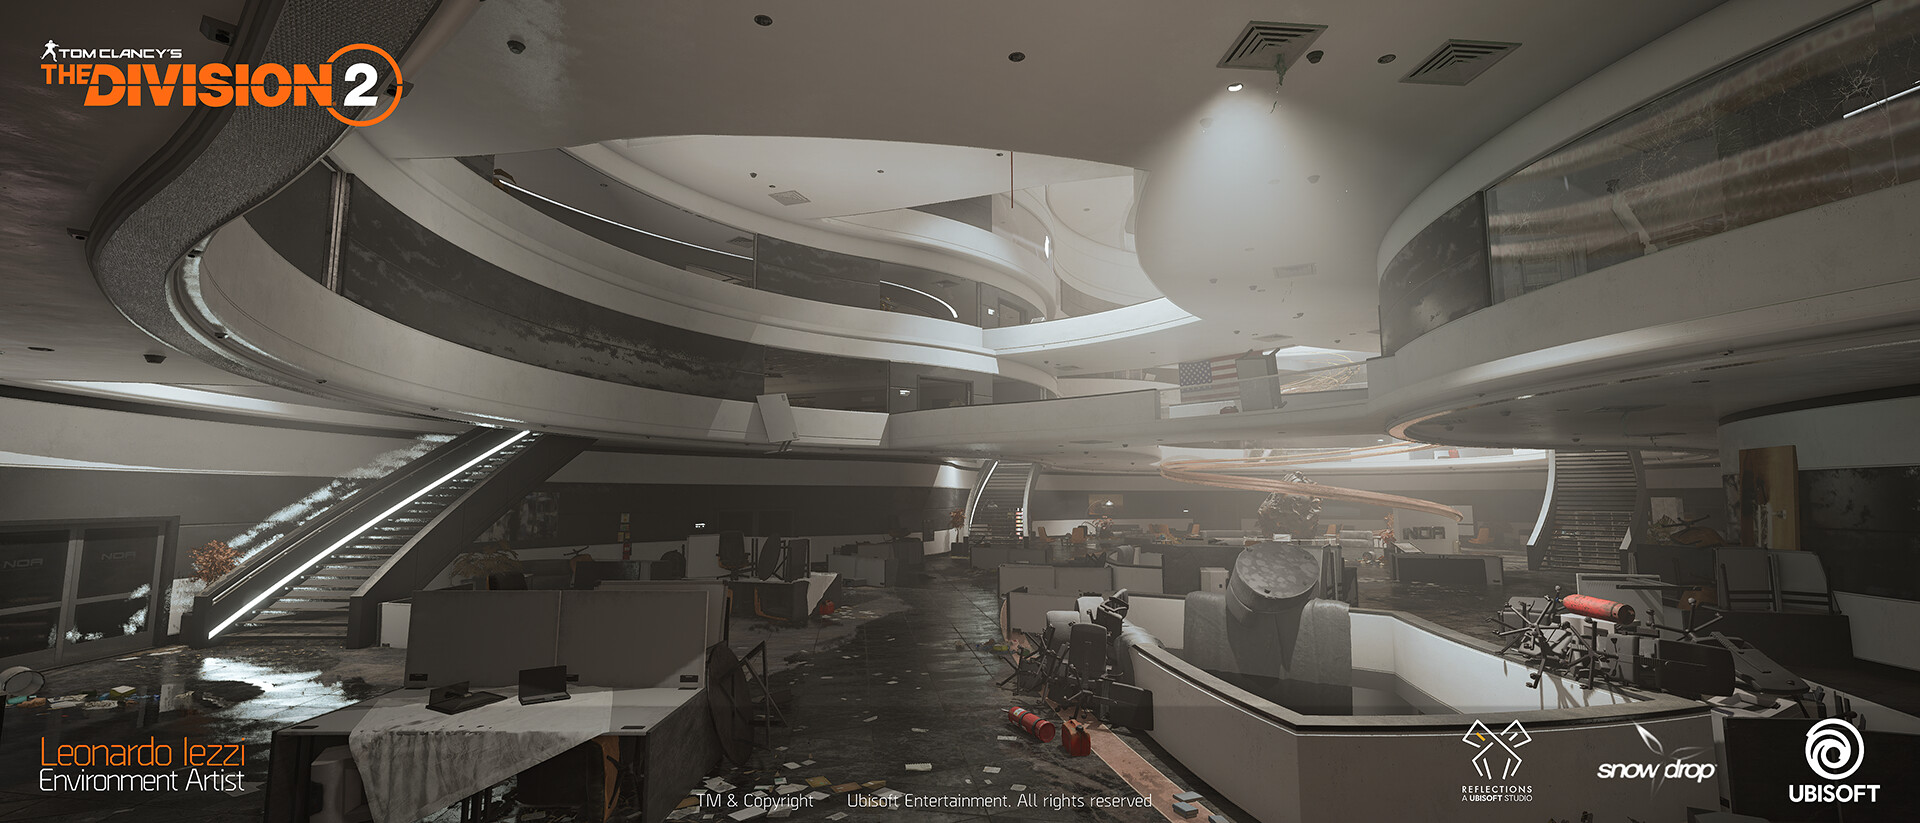 Leonardo iezzi leonardo iezzi the division 2 environment art 02 atrium 018 wide